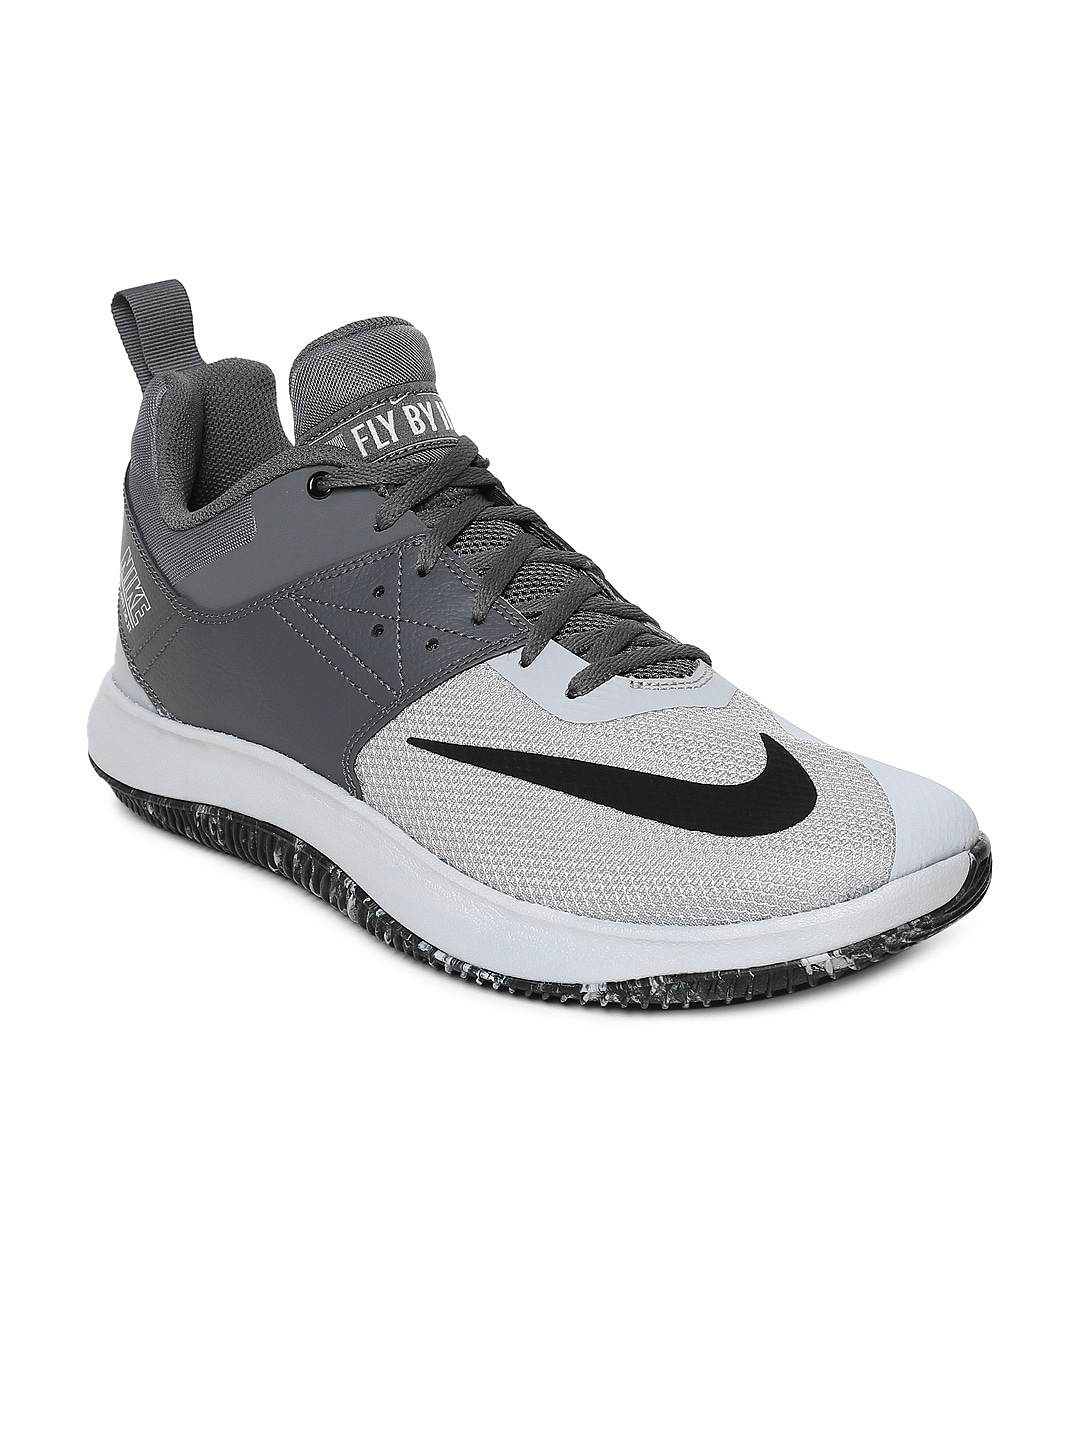 20a20e5b950a Nike Shoes - Buy Nike Shoes for Men